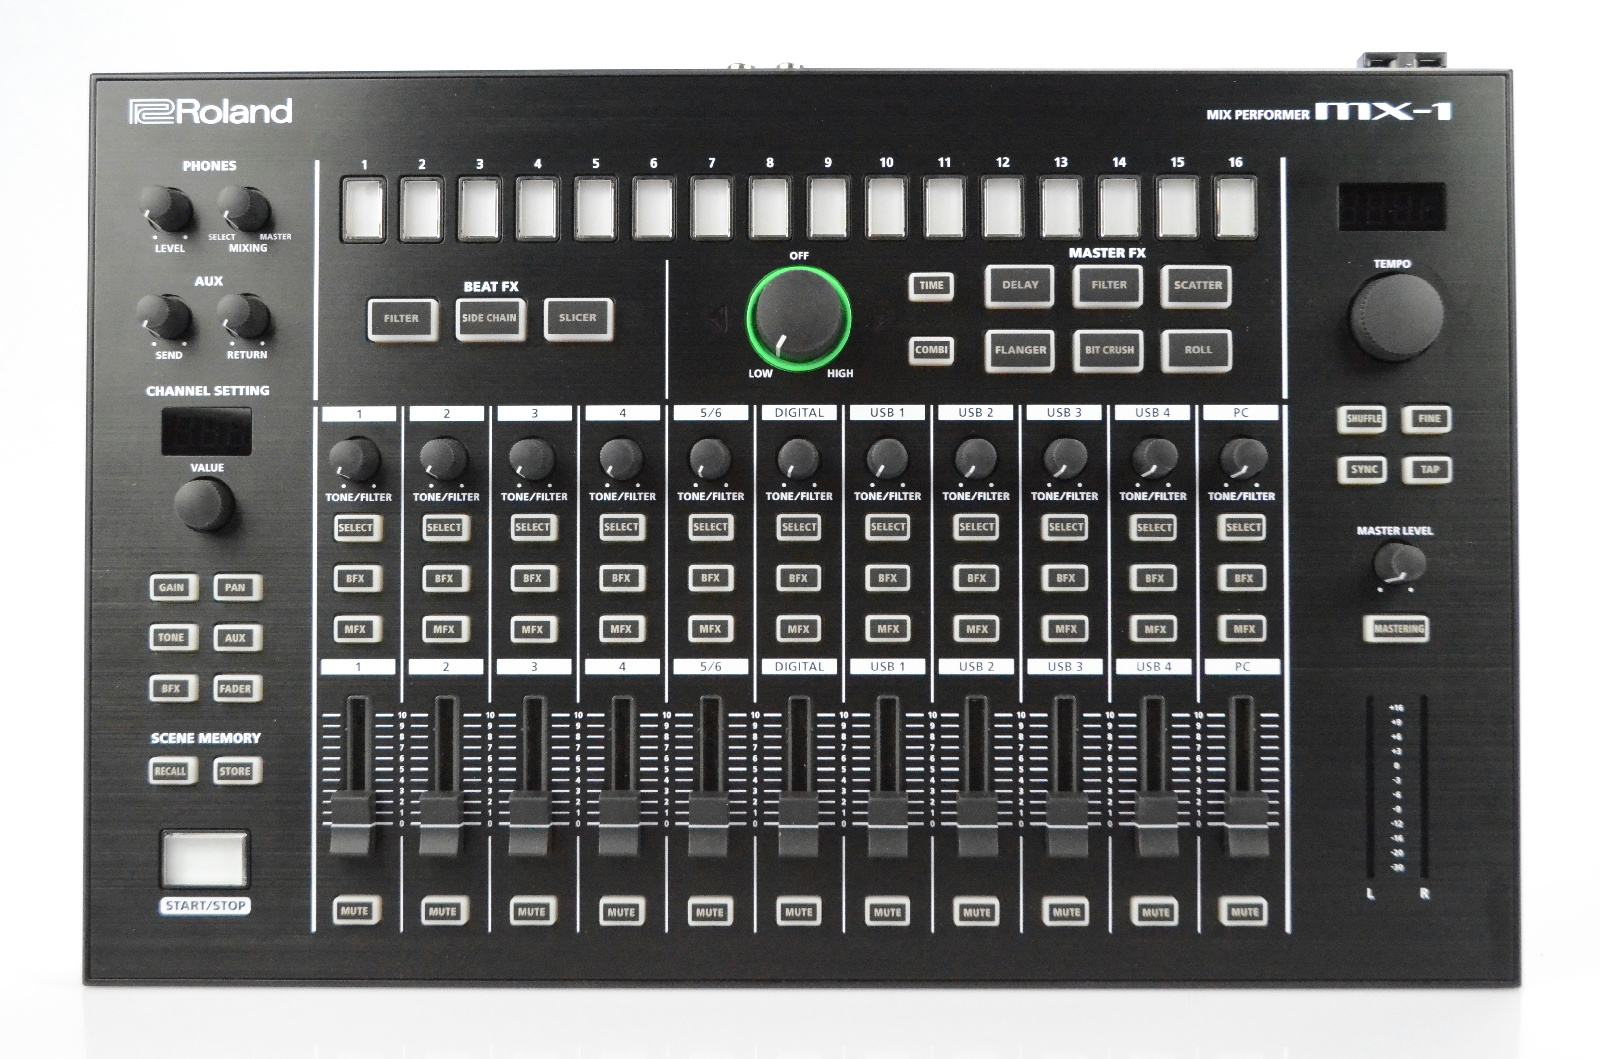 Roland MX-1 Mix Performer 16-Channel Mixer w/ Power Supply Mogami Cables #32913